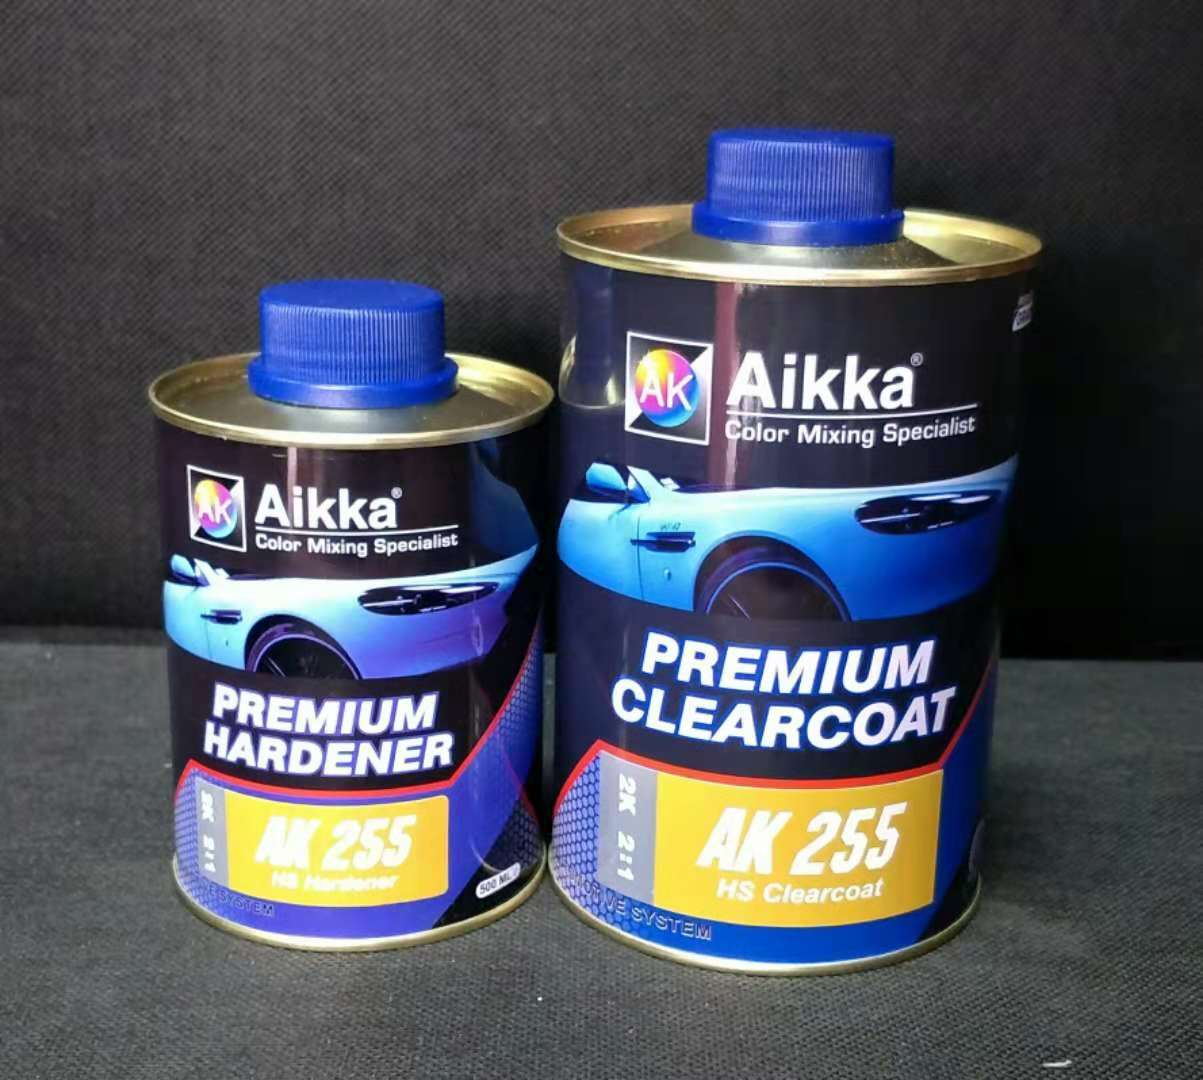 AK 255 HS CLEARCOAT